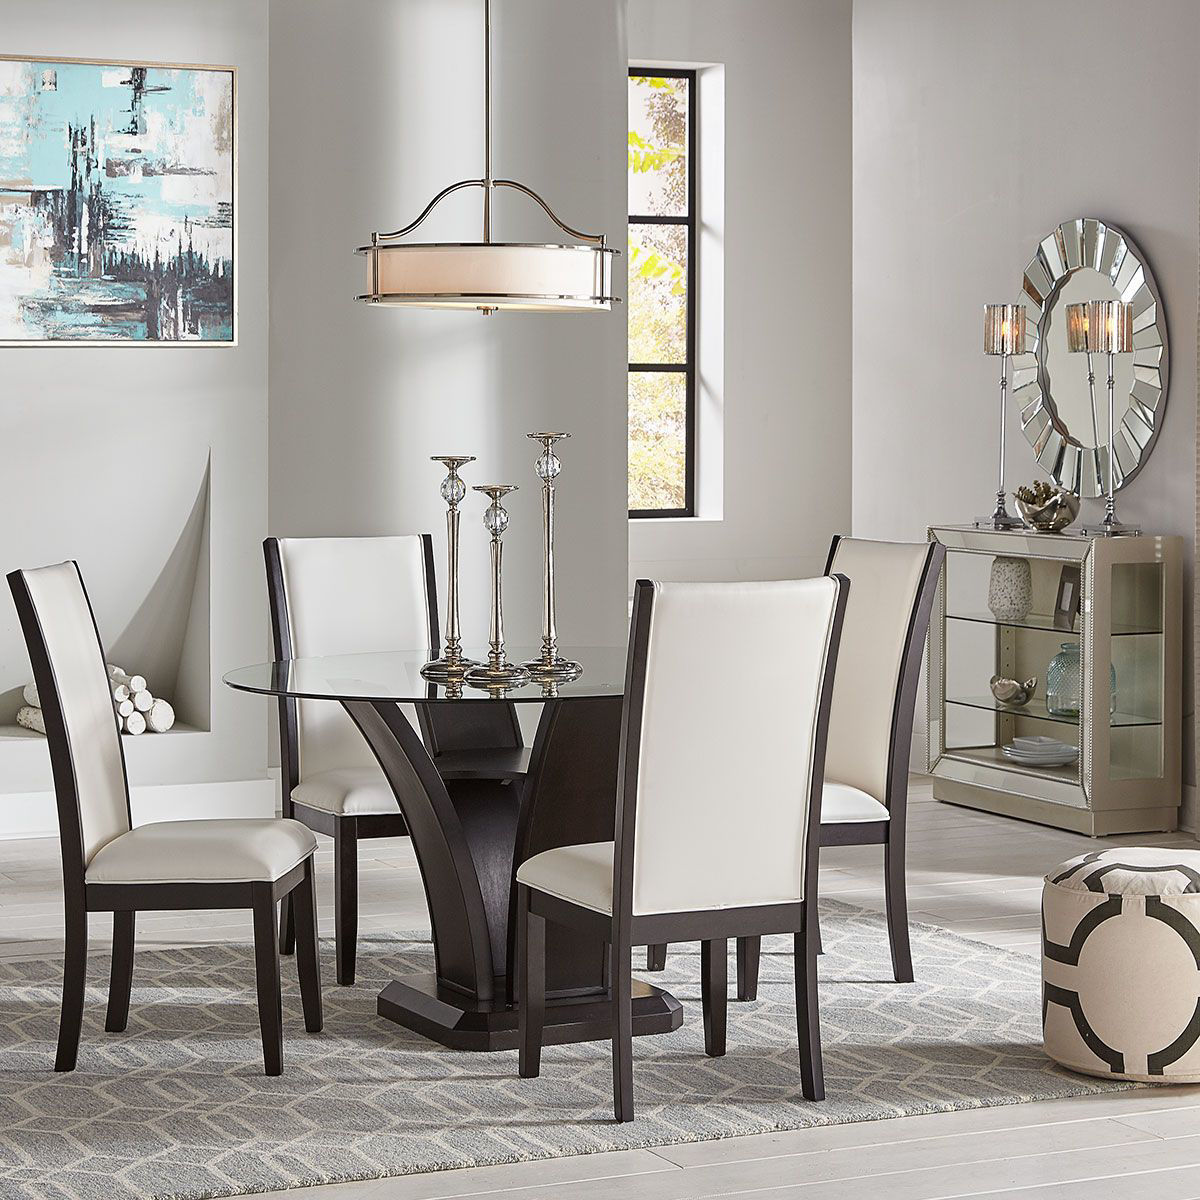 Tory 5 Pc Round Dining Set Badcock Home Furniture More